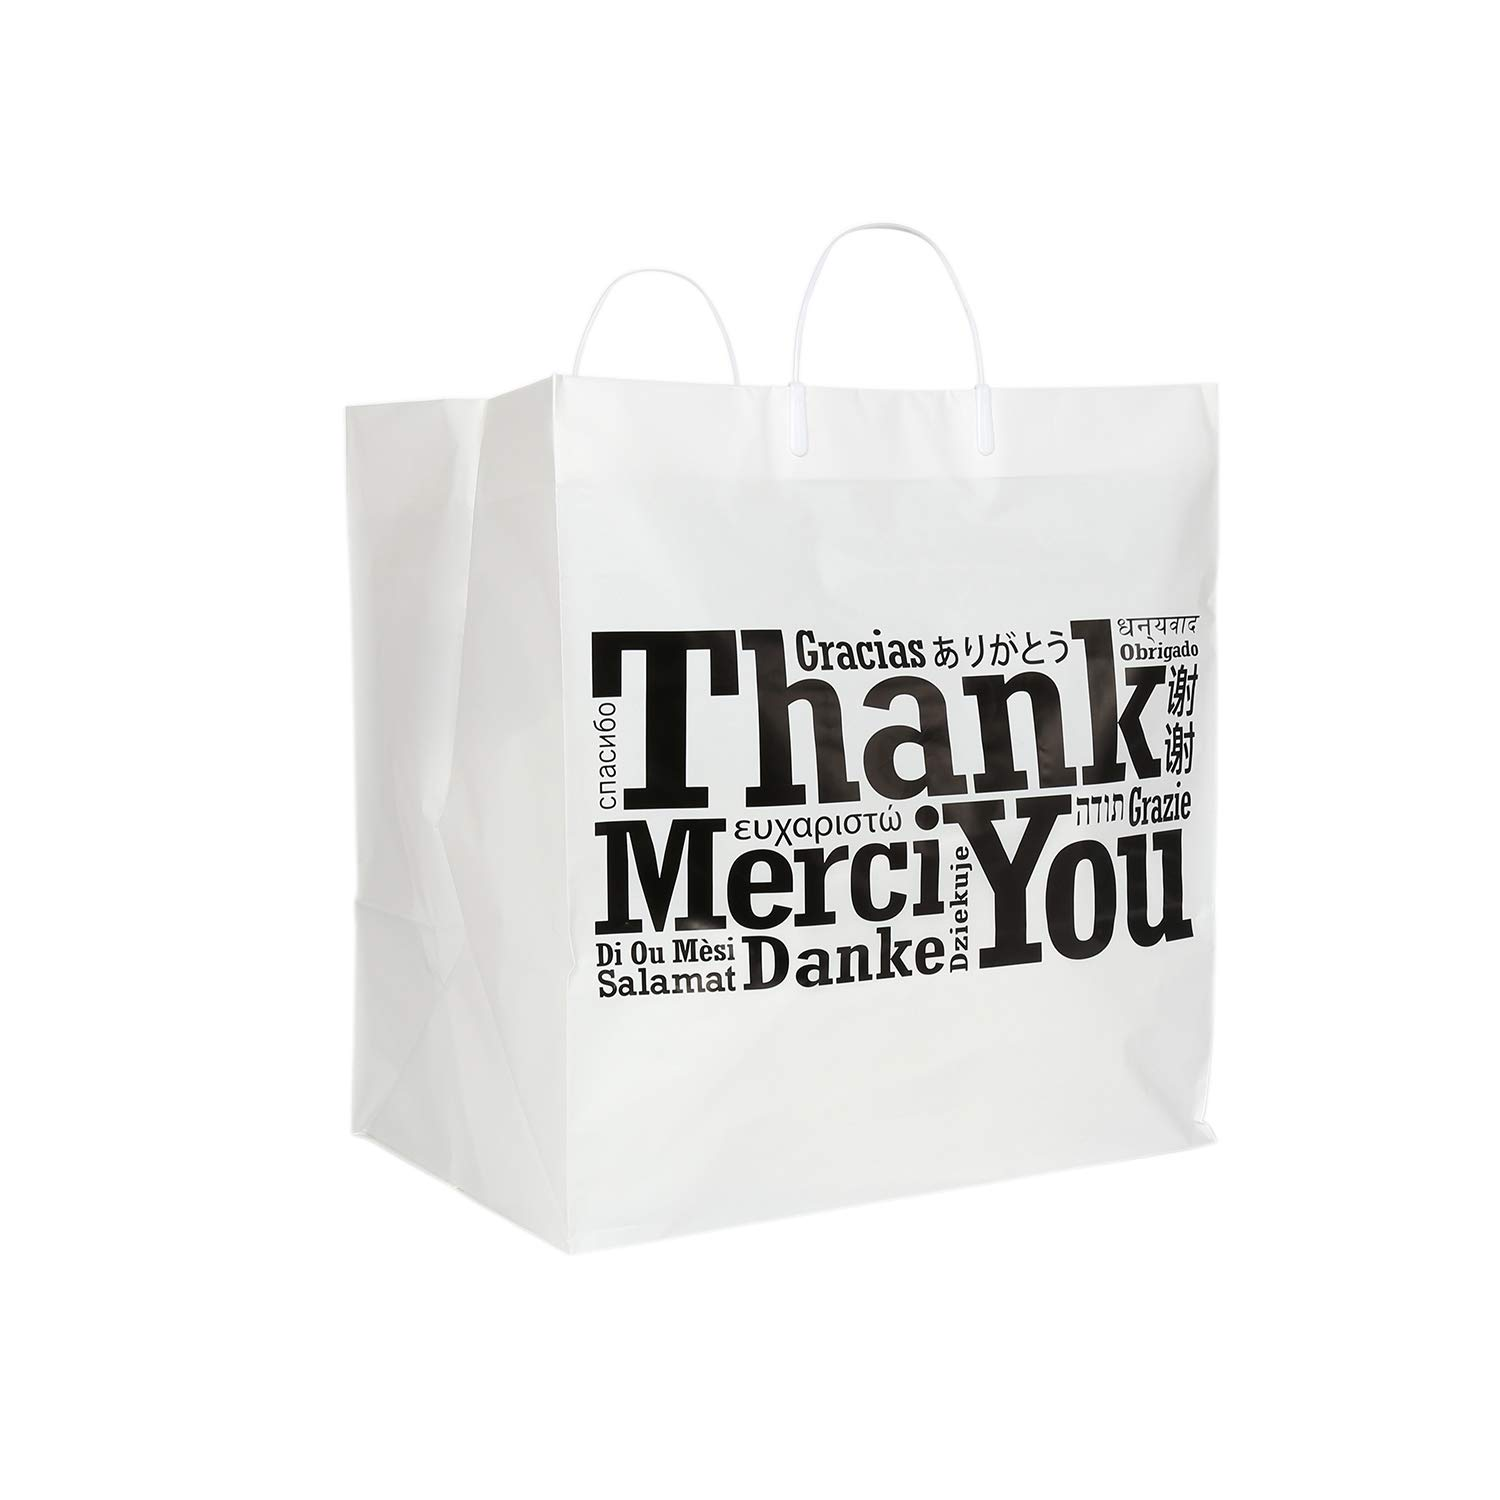 Royal Recyclable Plastic Shopping Bags with Rigid Handles, 14'' x 10'' x 15'', Multilingual''Thank You'' Design, Case of 100 by Royal (Image #1)